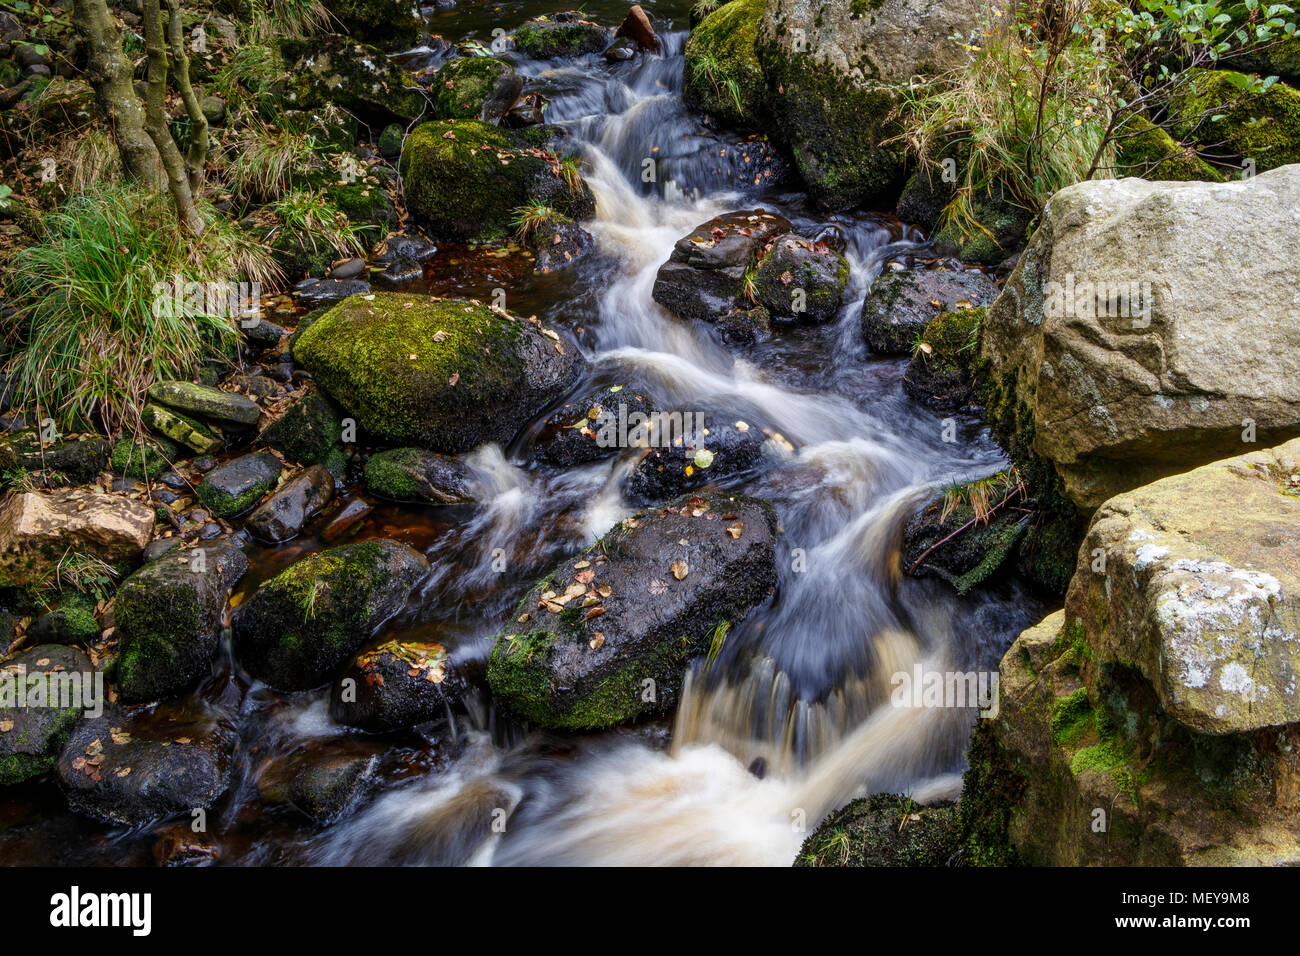 Water folwing over rocks in a small beck in the North Yorkshire Dales, UK. - Stock Image